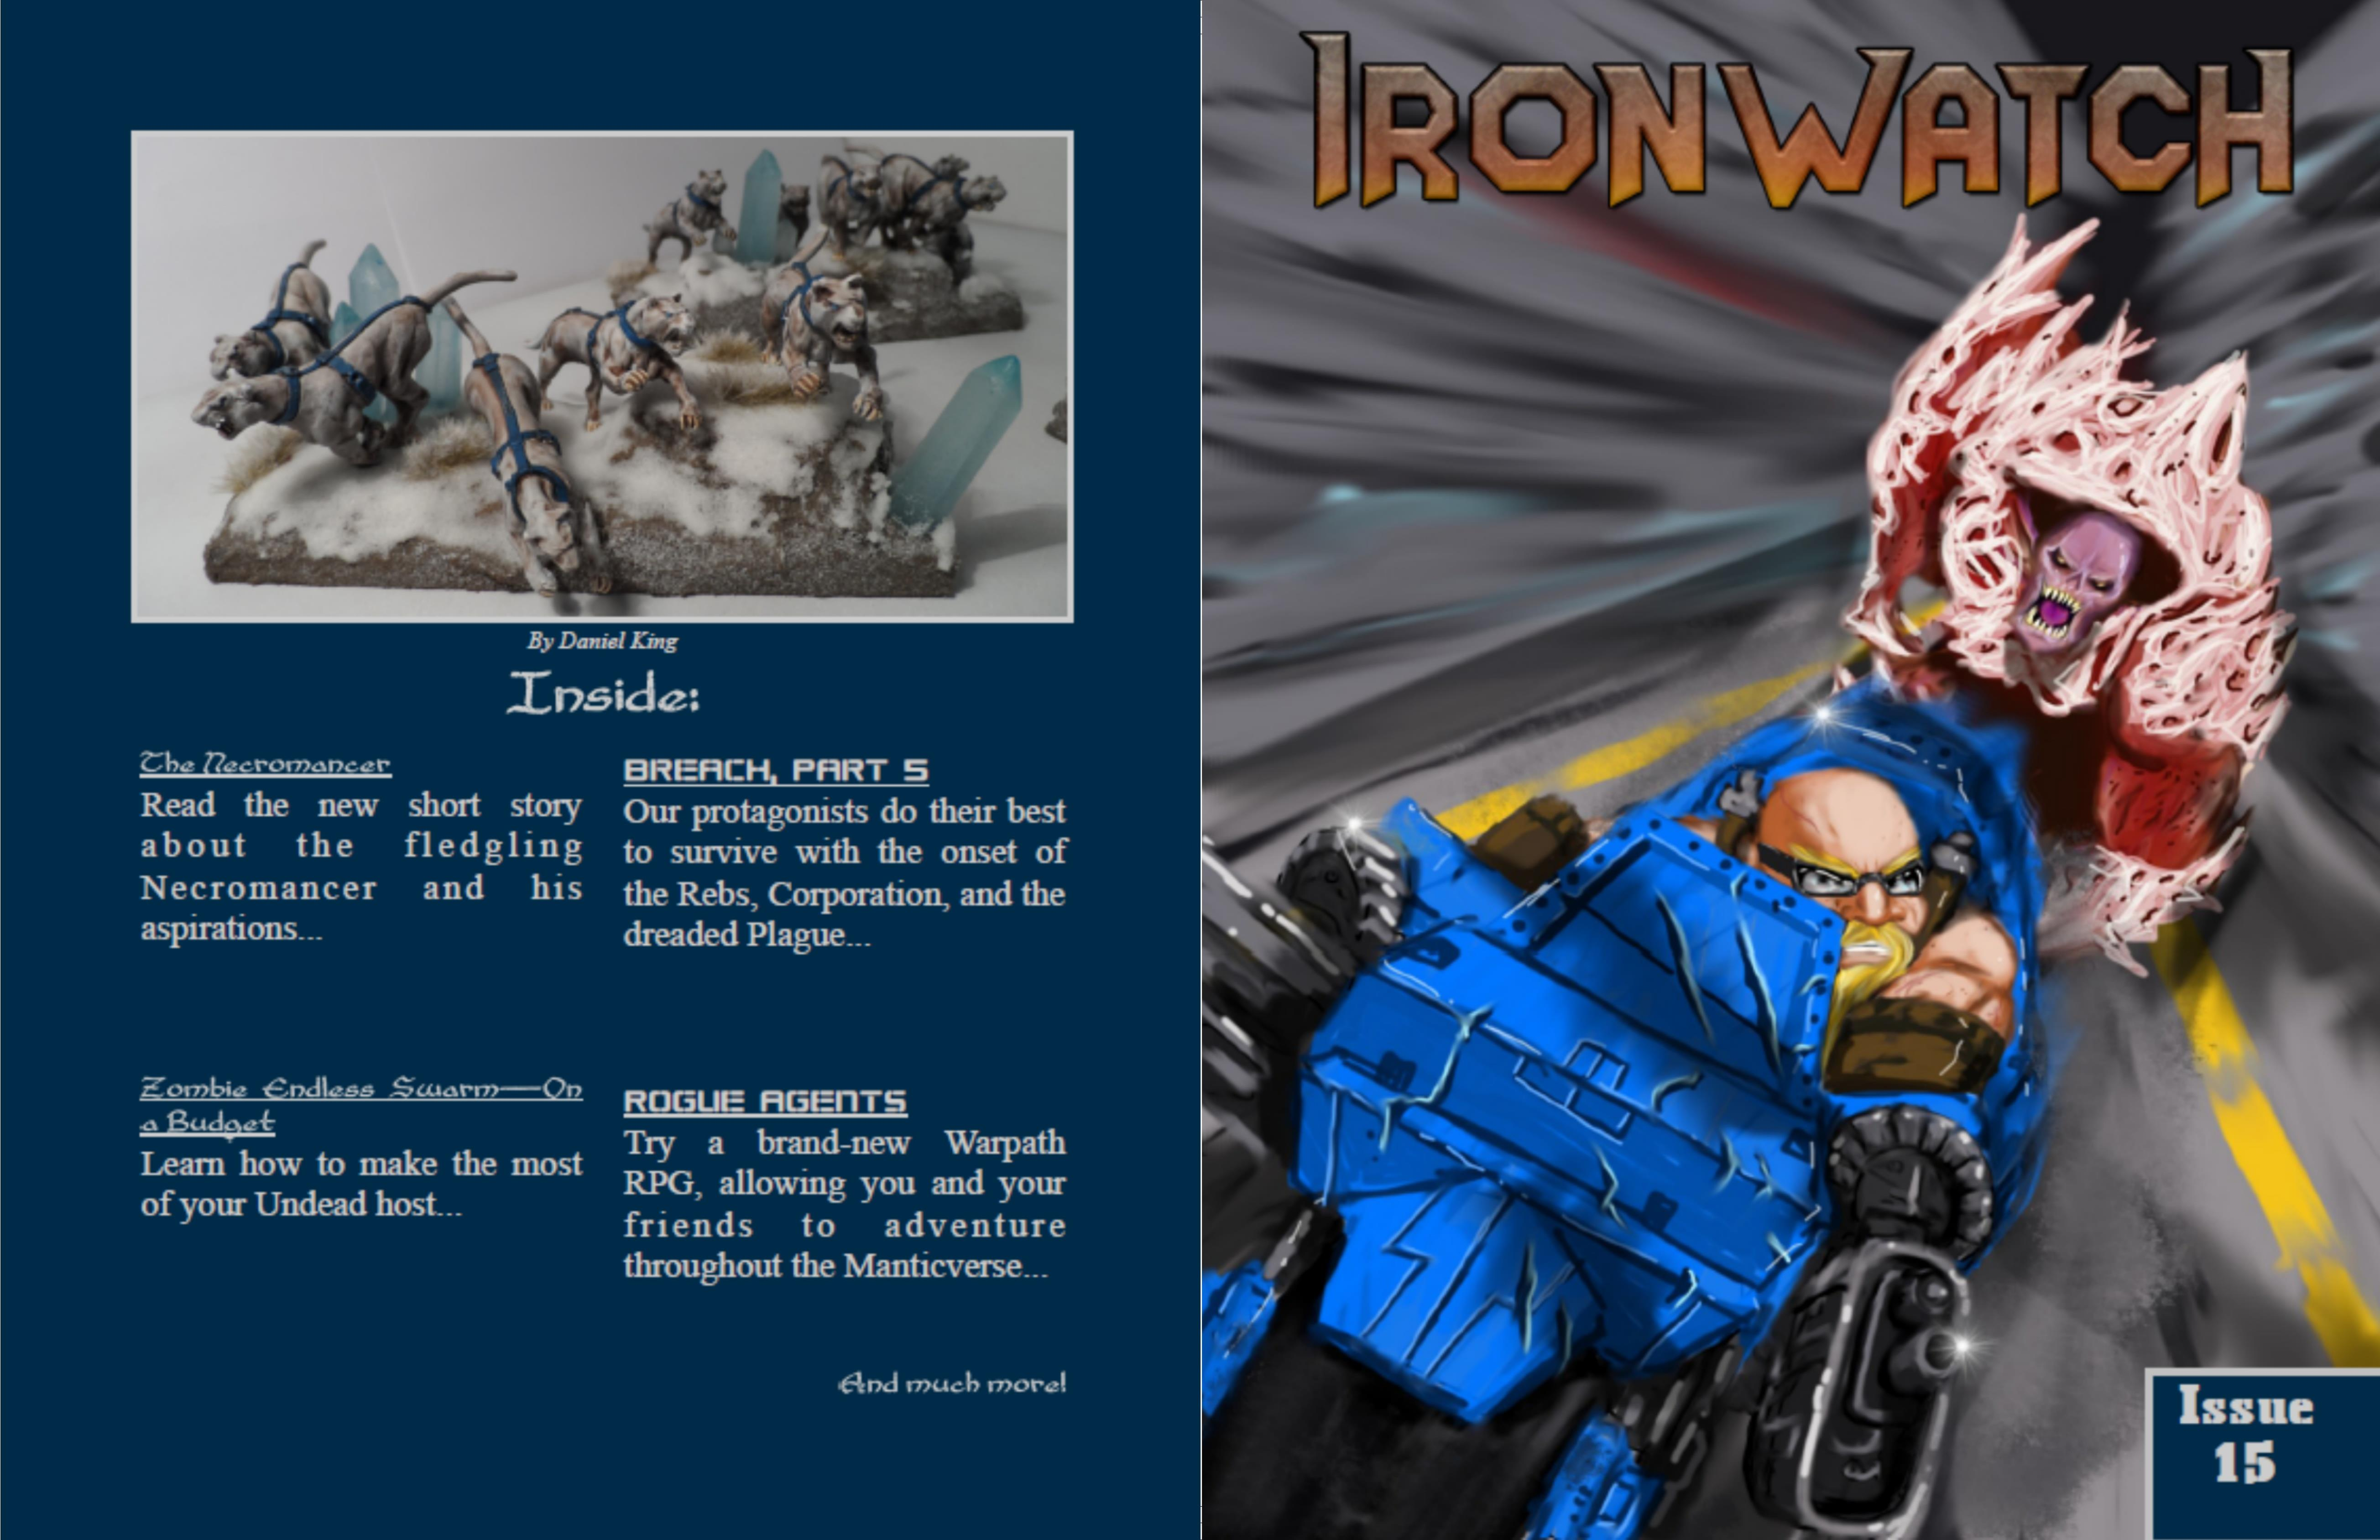 Ironwatch Issue 15 cover image